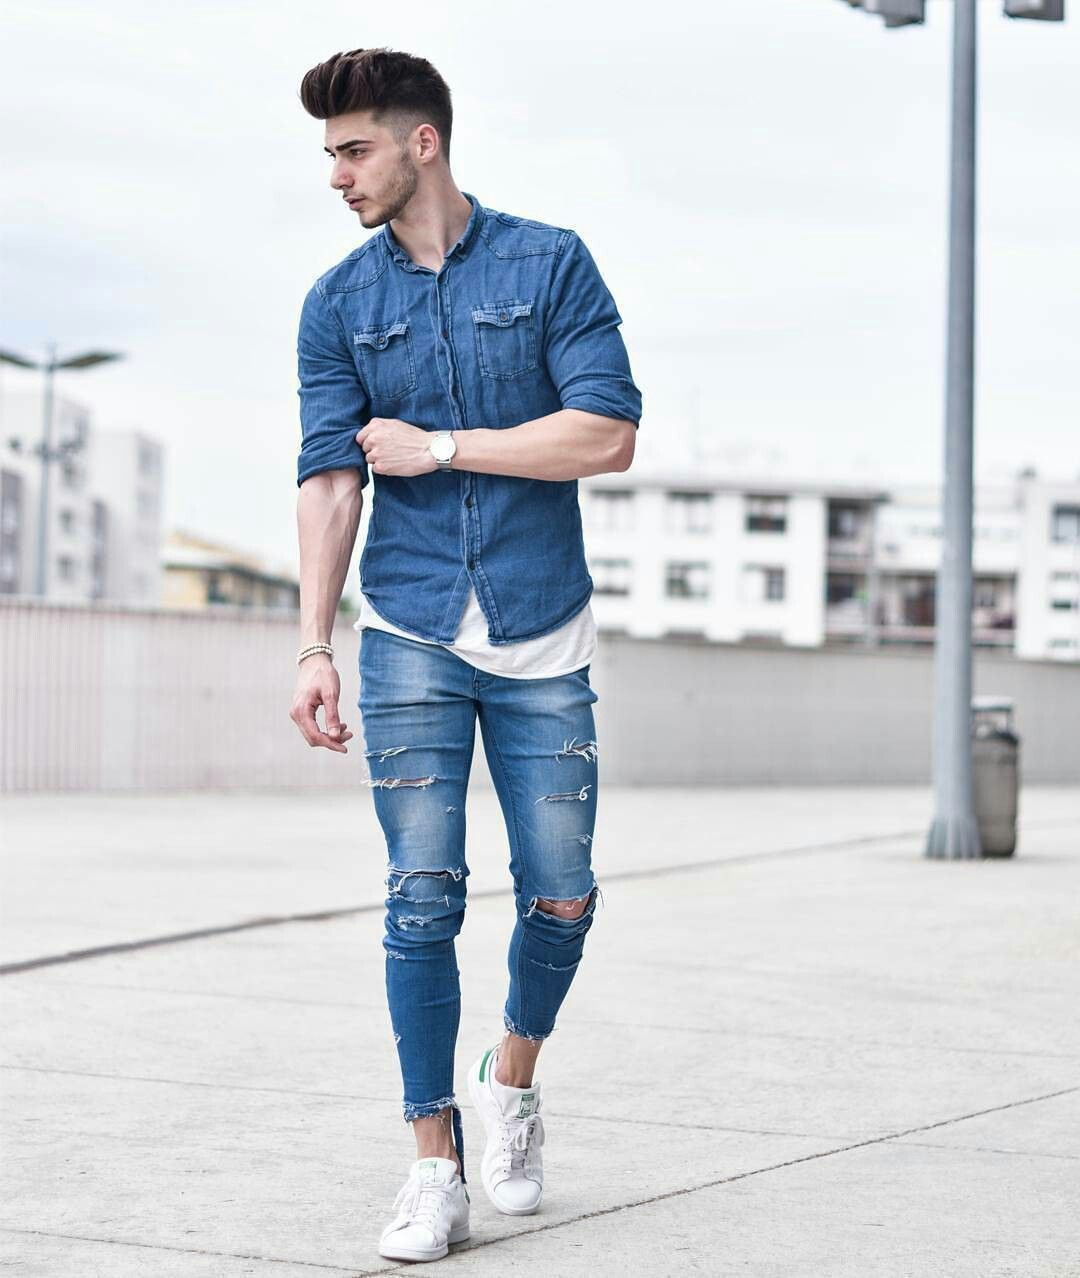 Buy Styles clothing for men pictures trends